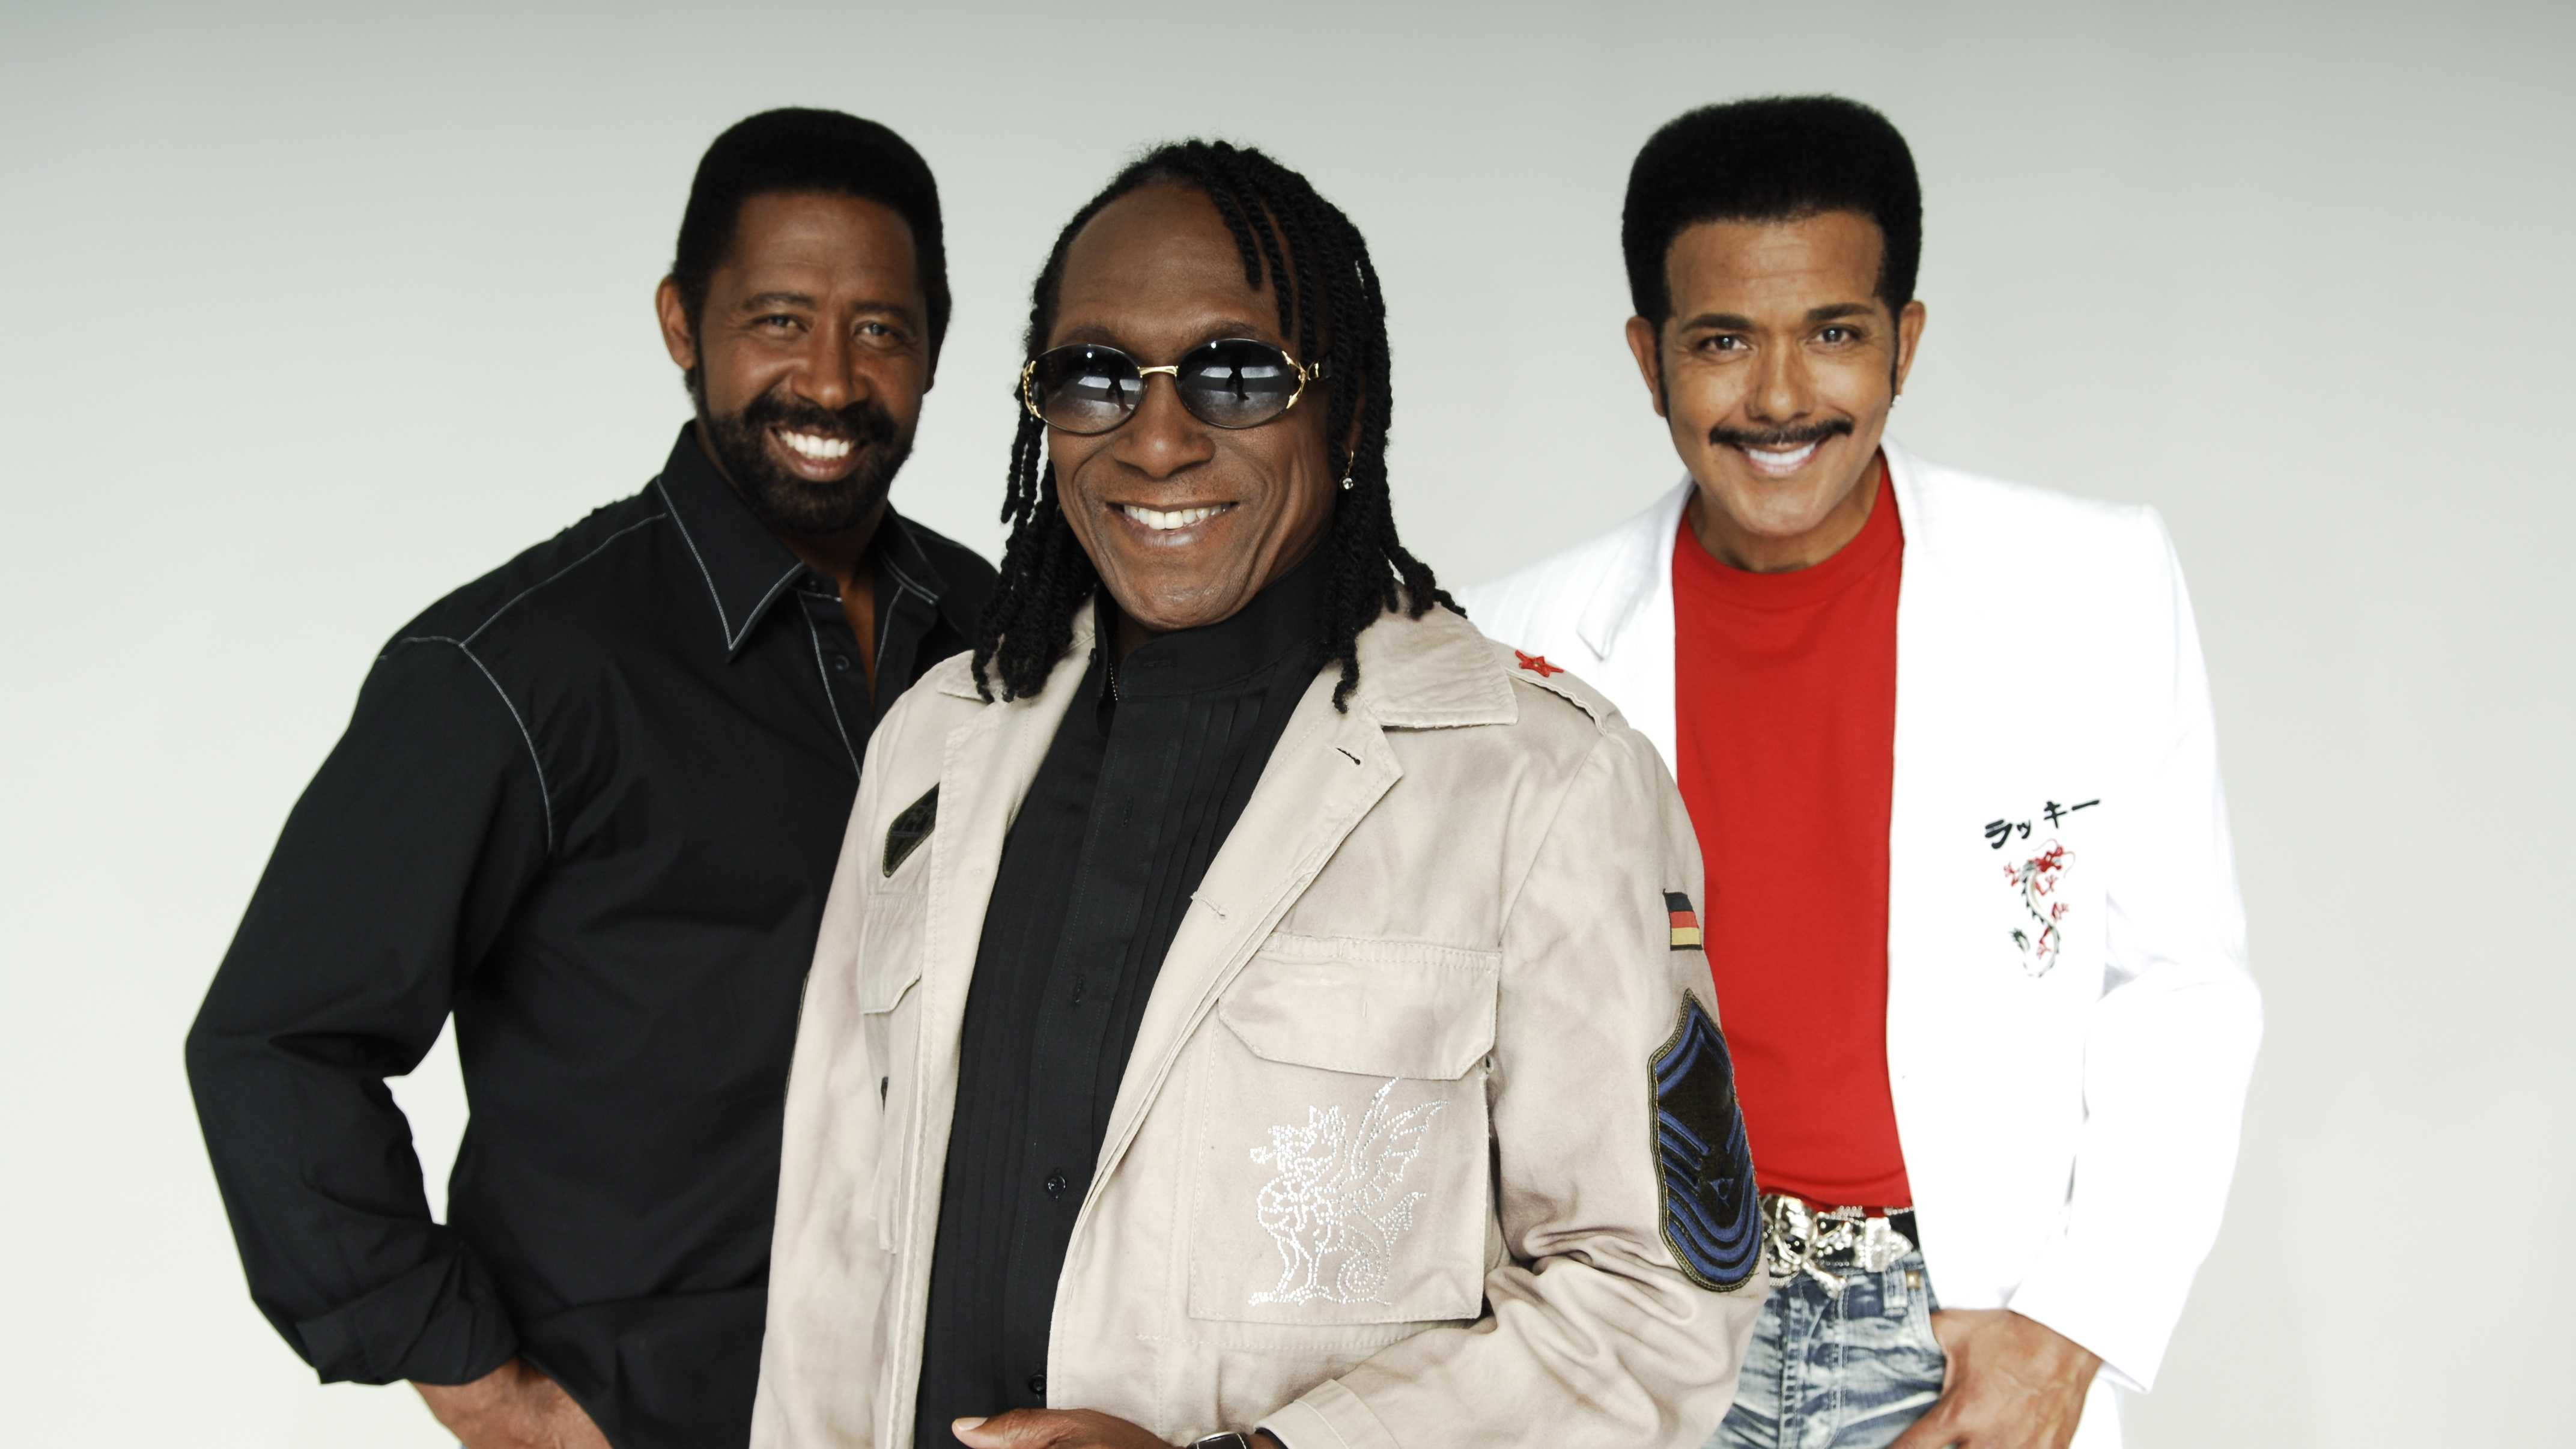 The Commodores will be performing Friday at 8 p.m.